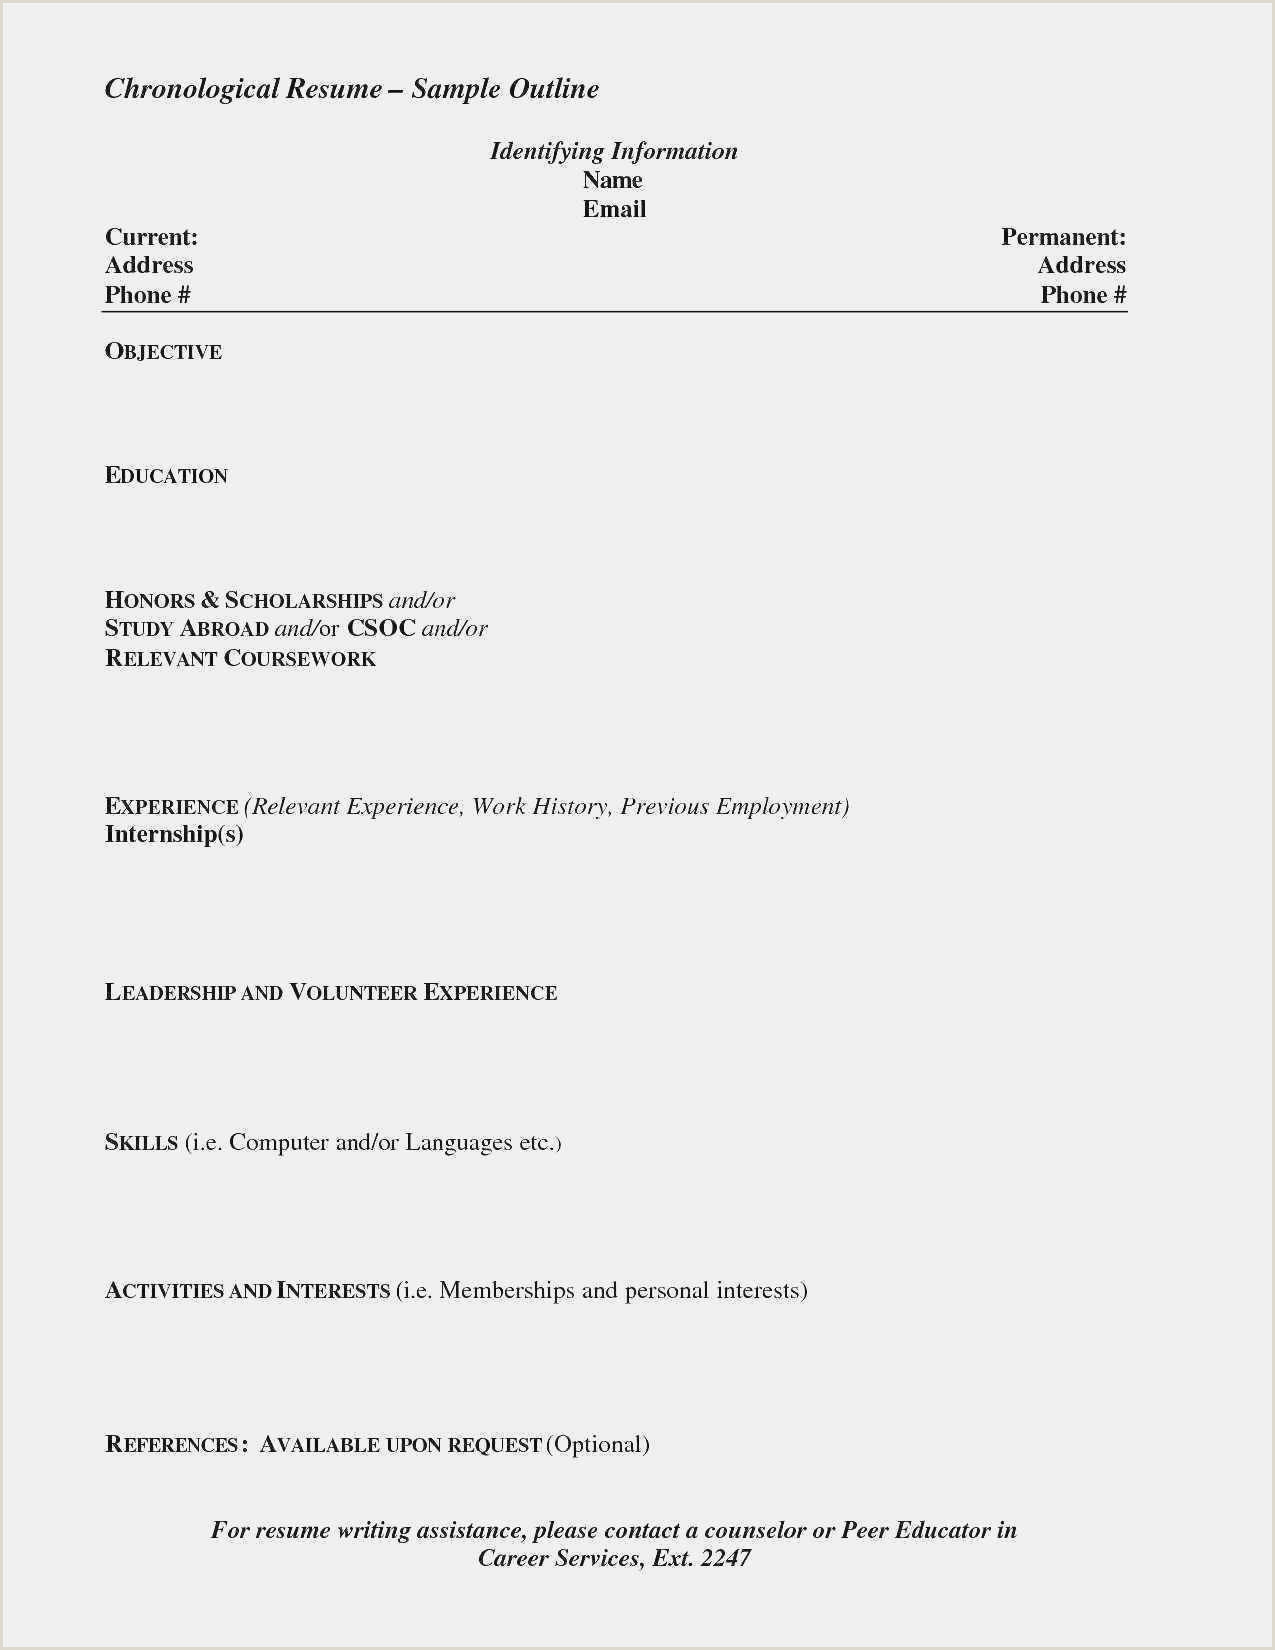 Teacher Resume format Doc Free Download 50 Resume Templates Doc format